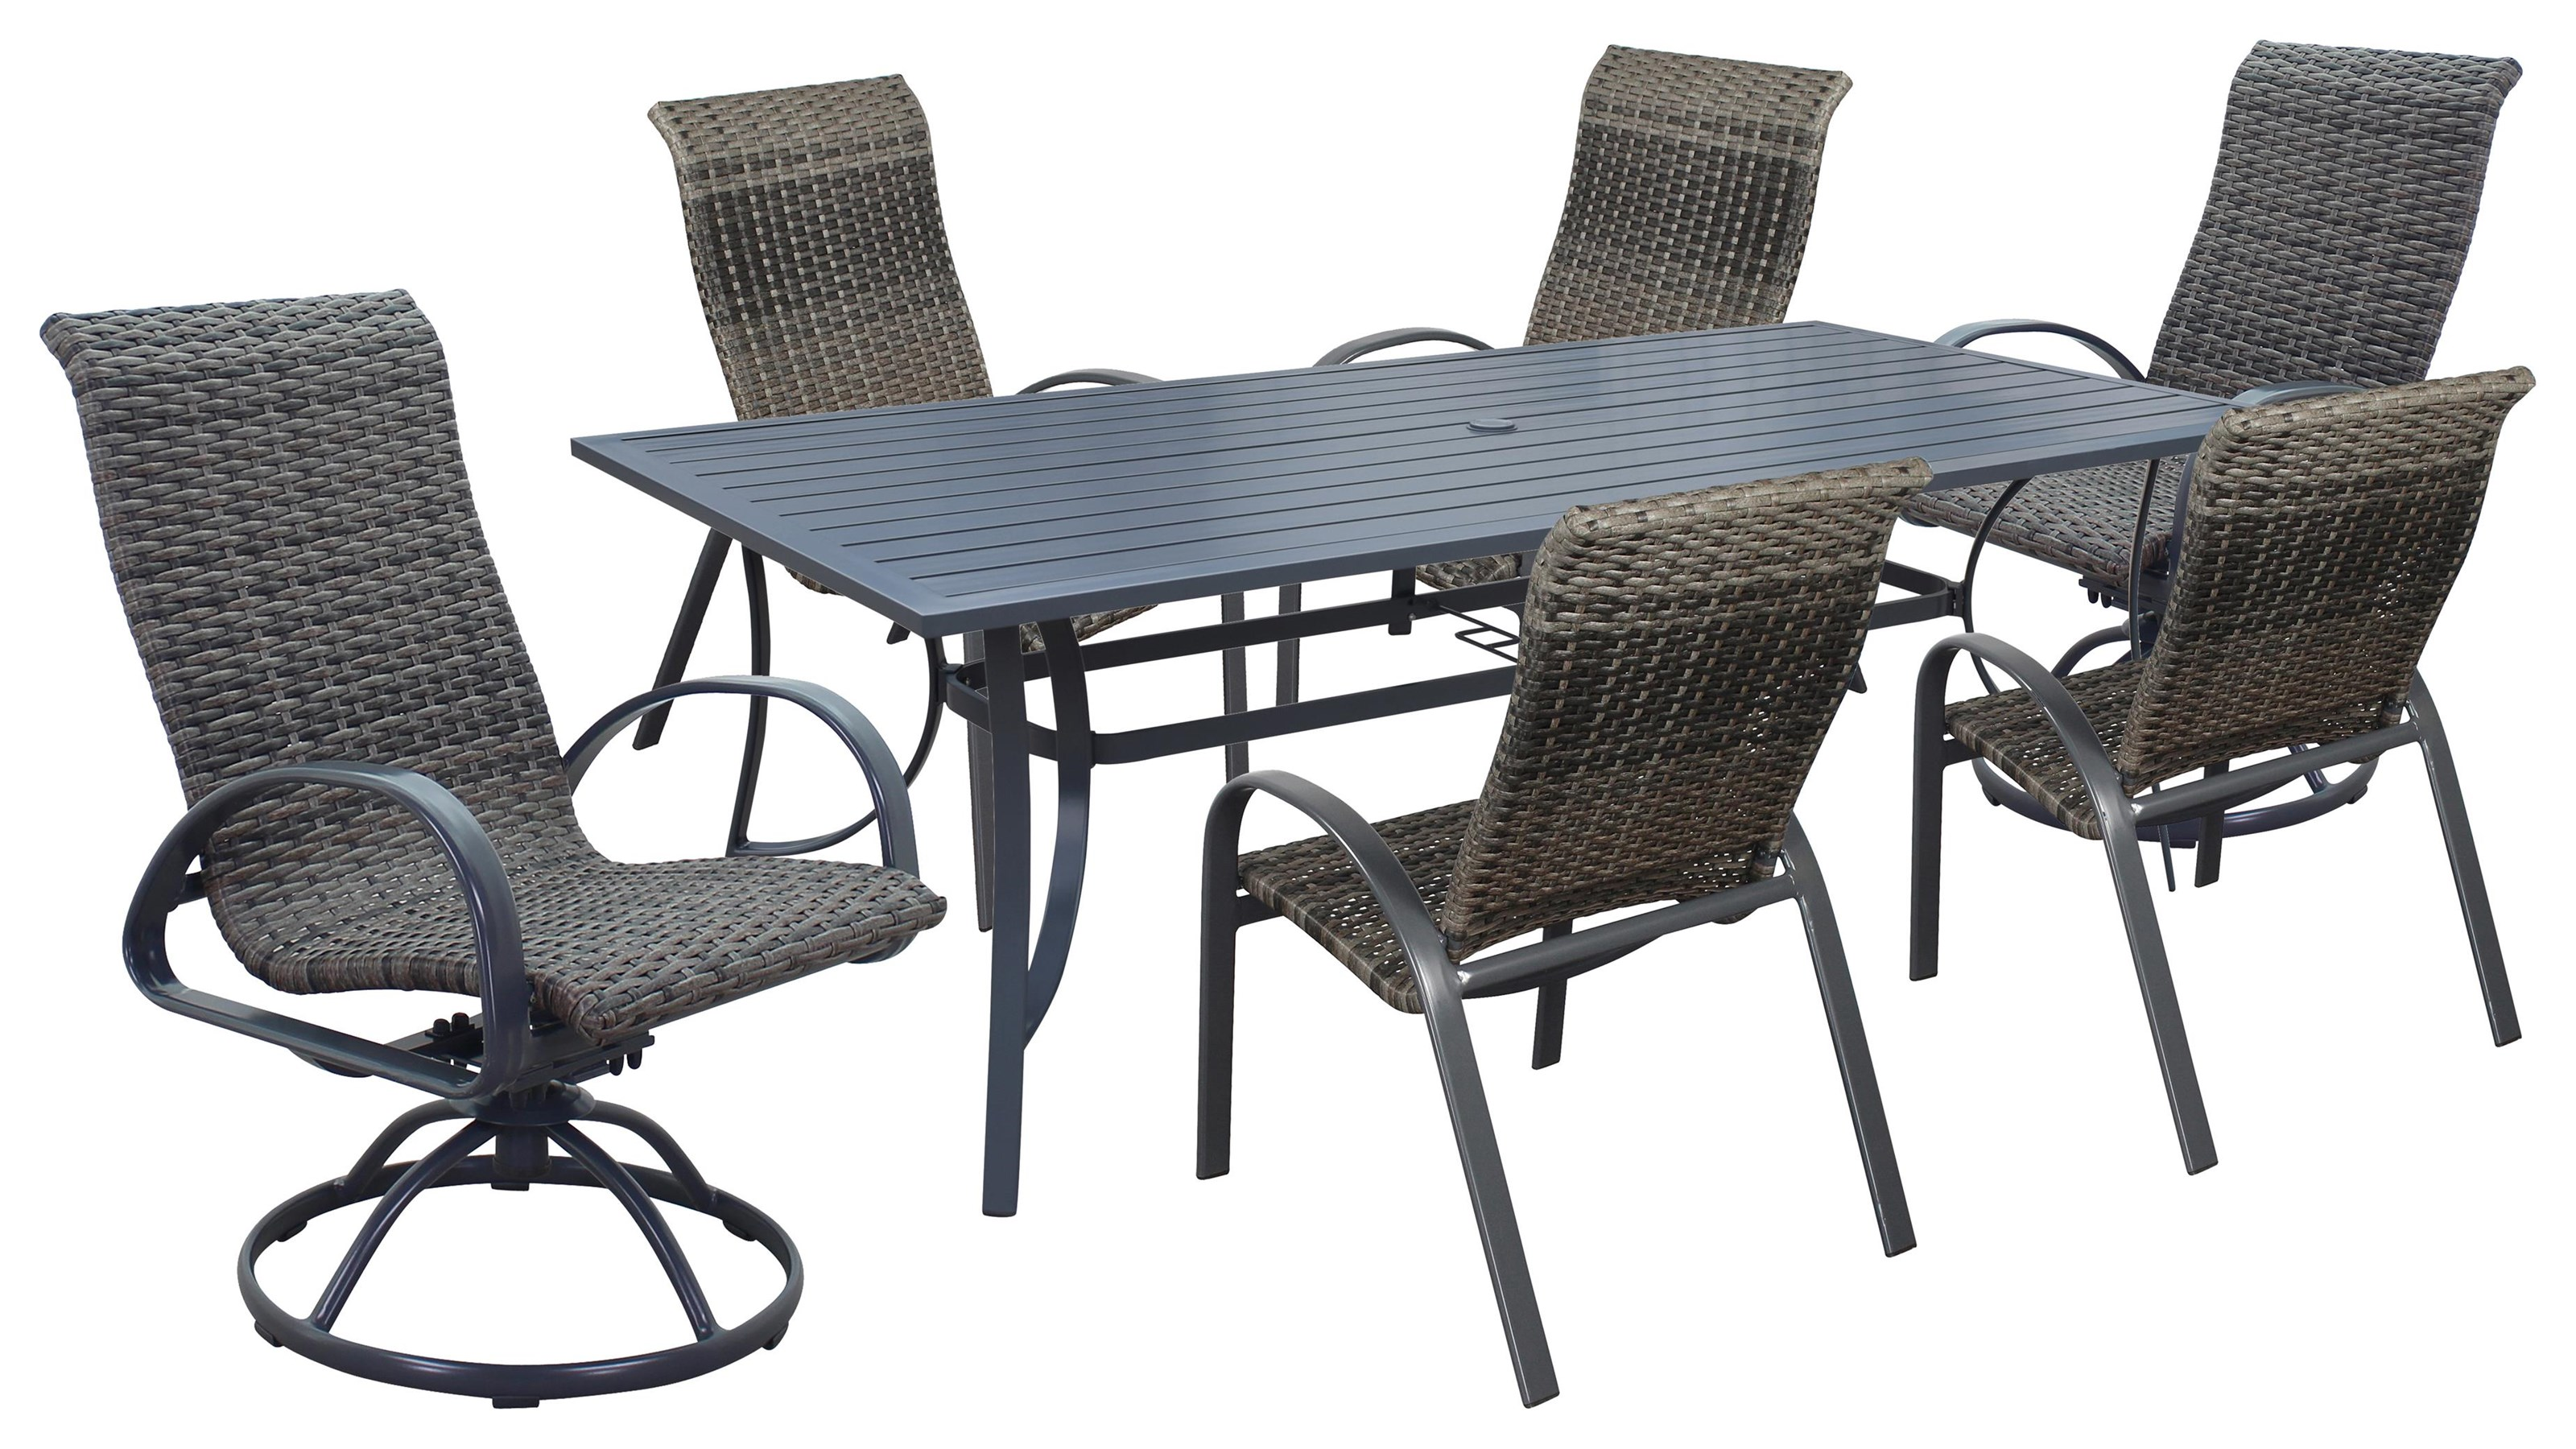 Portside Woven Table, Chair, Swivel Chair by Kingston Casual at Johnny Janosik